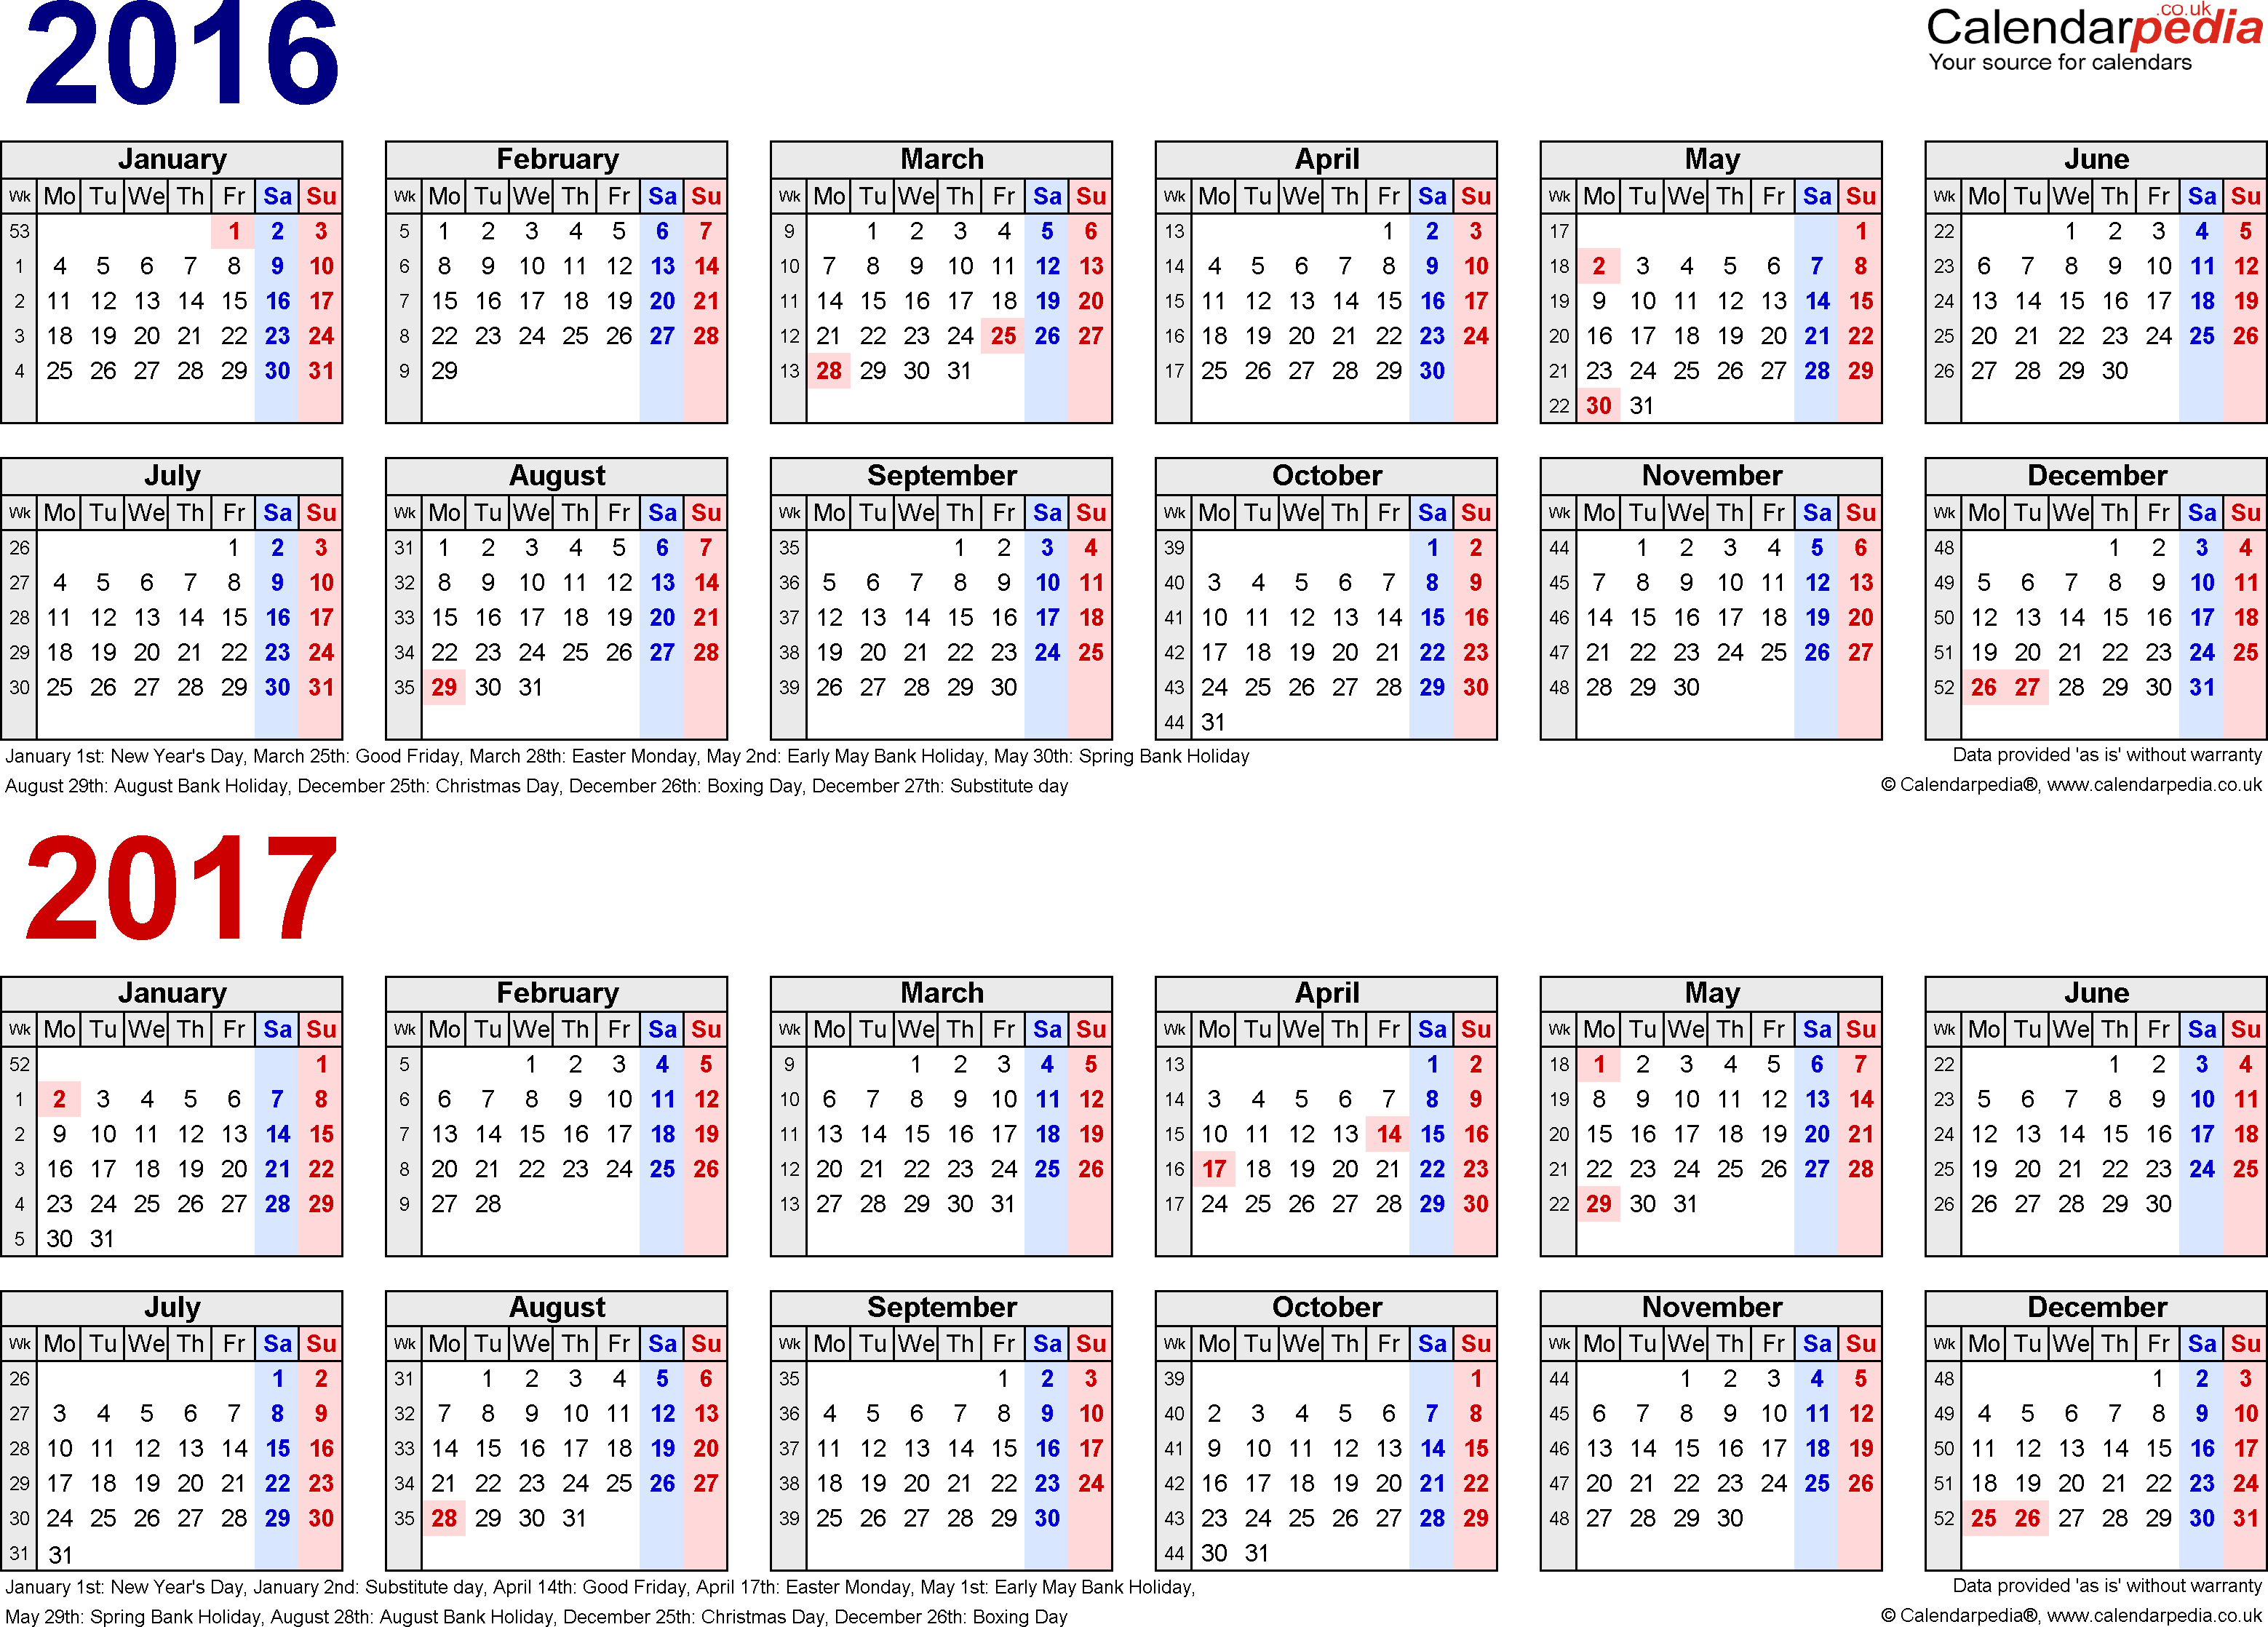 Download Template 1: Excel template for two year calendar 2016/2017 in blue/red (landscape orientation, 1 page, A4)